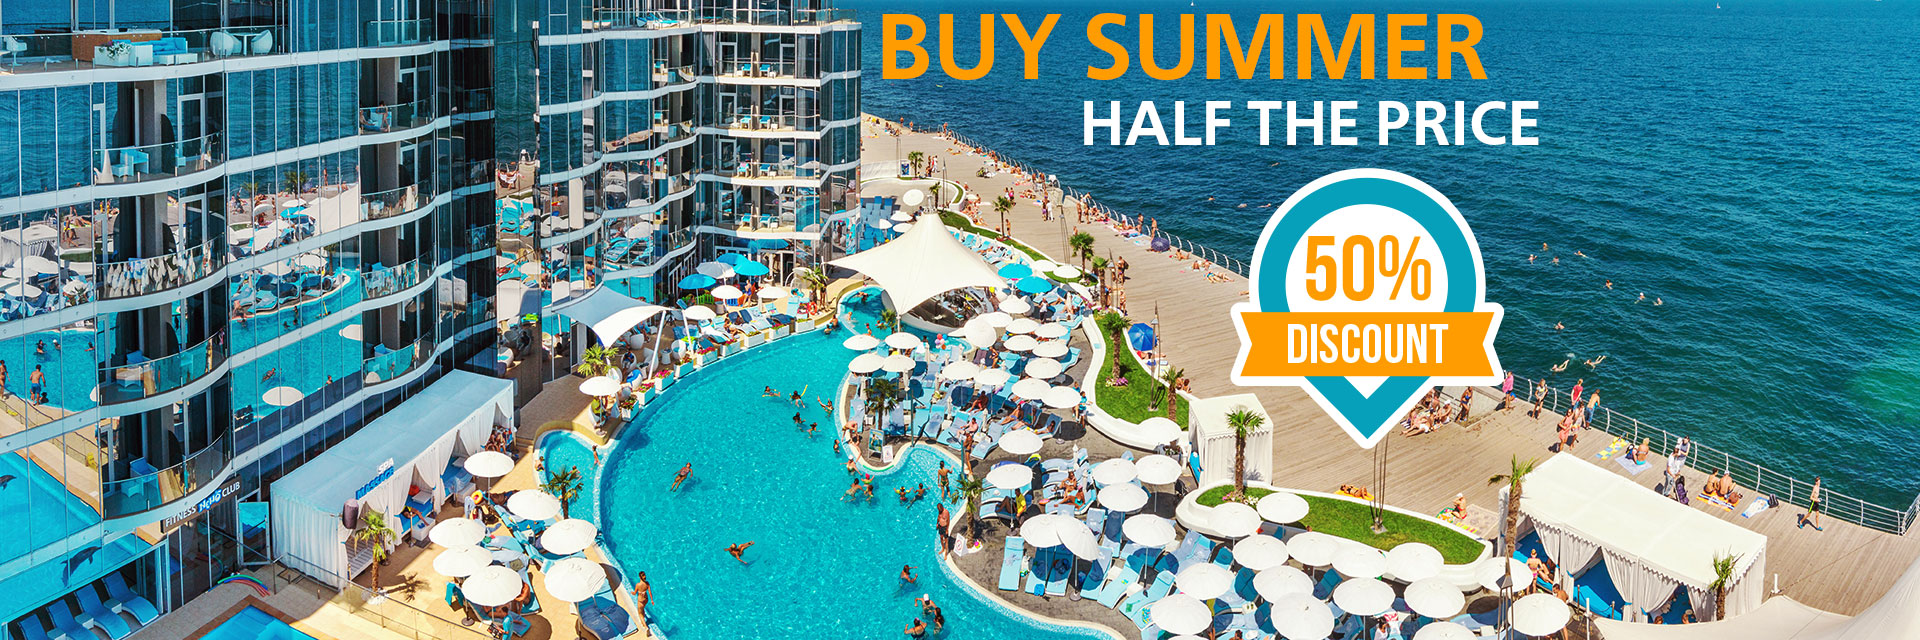 Buy summer half the price in RESORT & SPA HOTEL NEMO, photo № 1